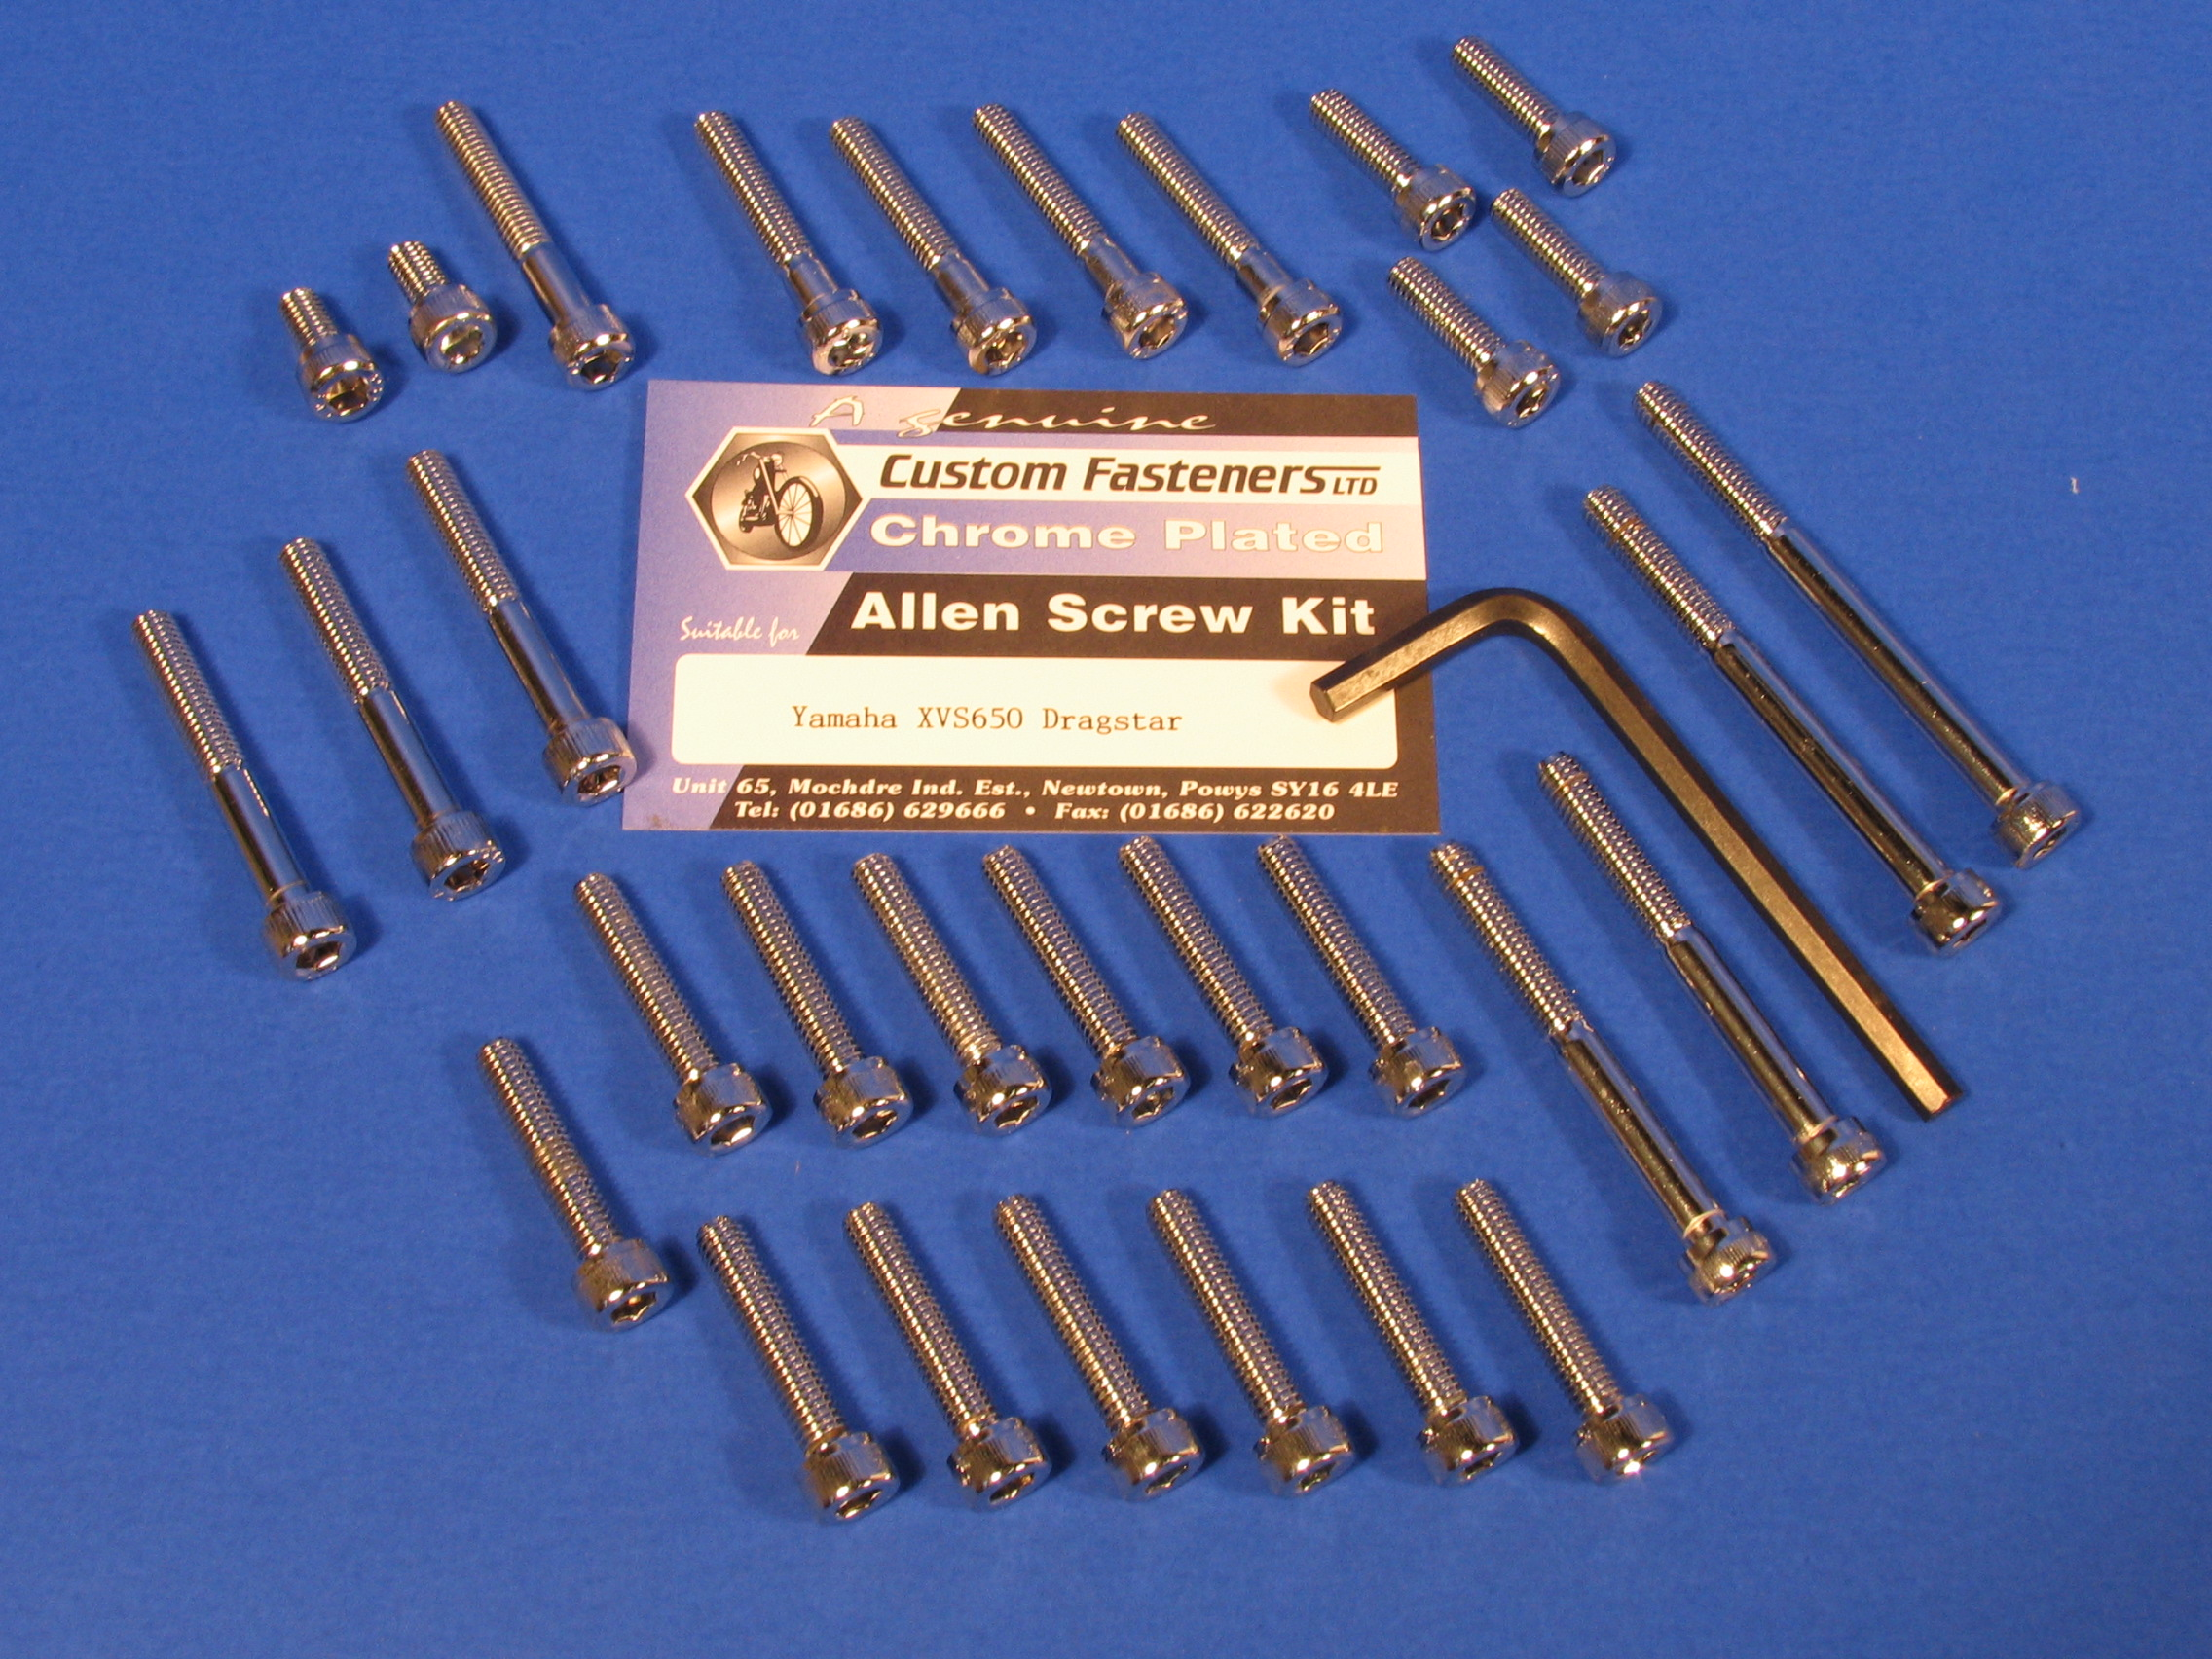 Kawasaki Allen Screw Kits